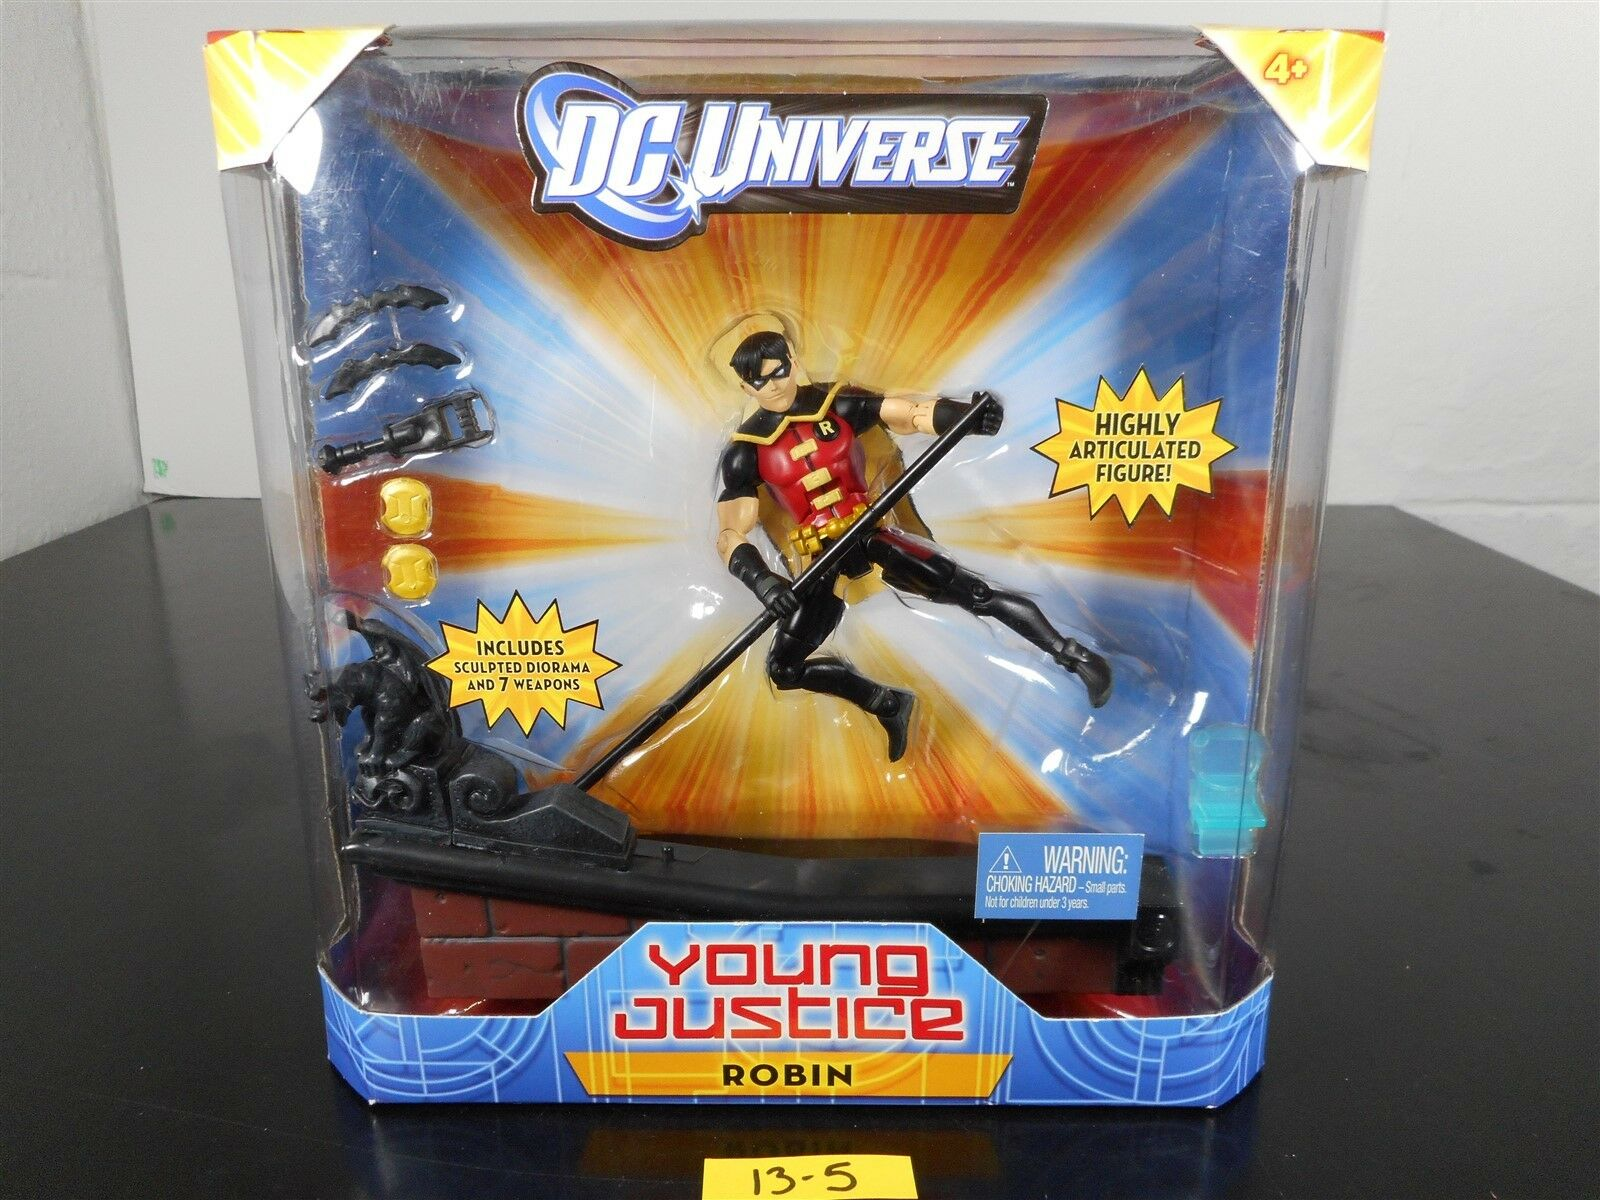 MINT SEALED DC UNIVERSE YOUNG JUSTICE ROBIN SCULPTED DIORAMA & 7 WEAPONS 13-5